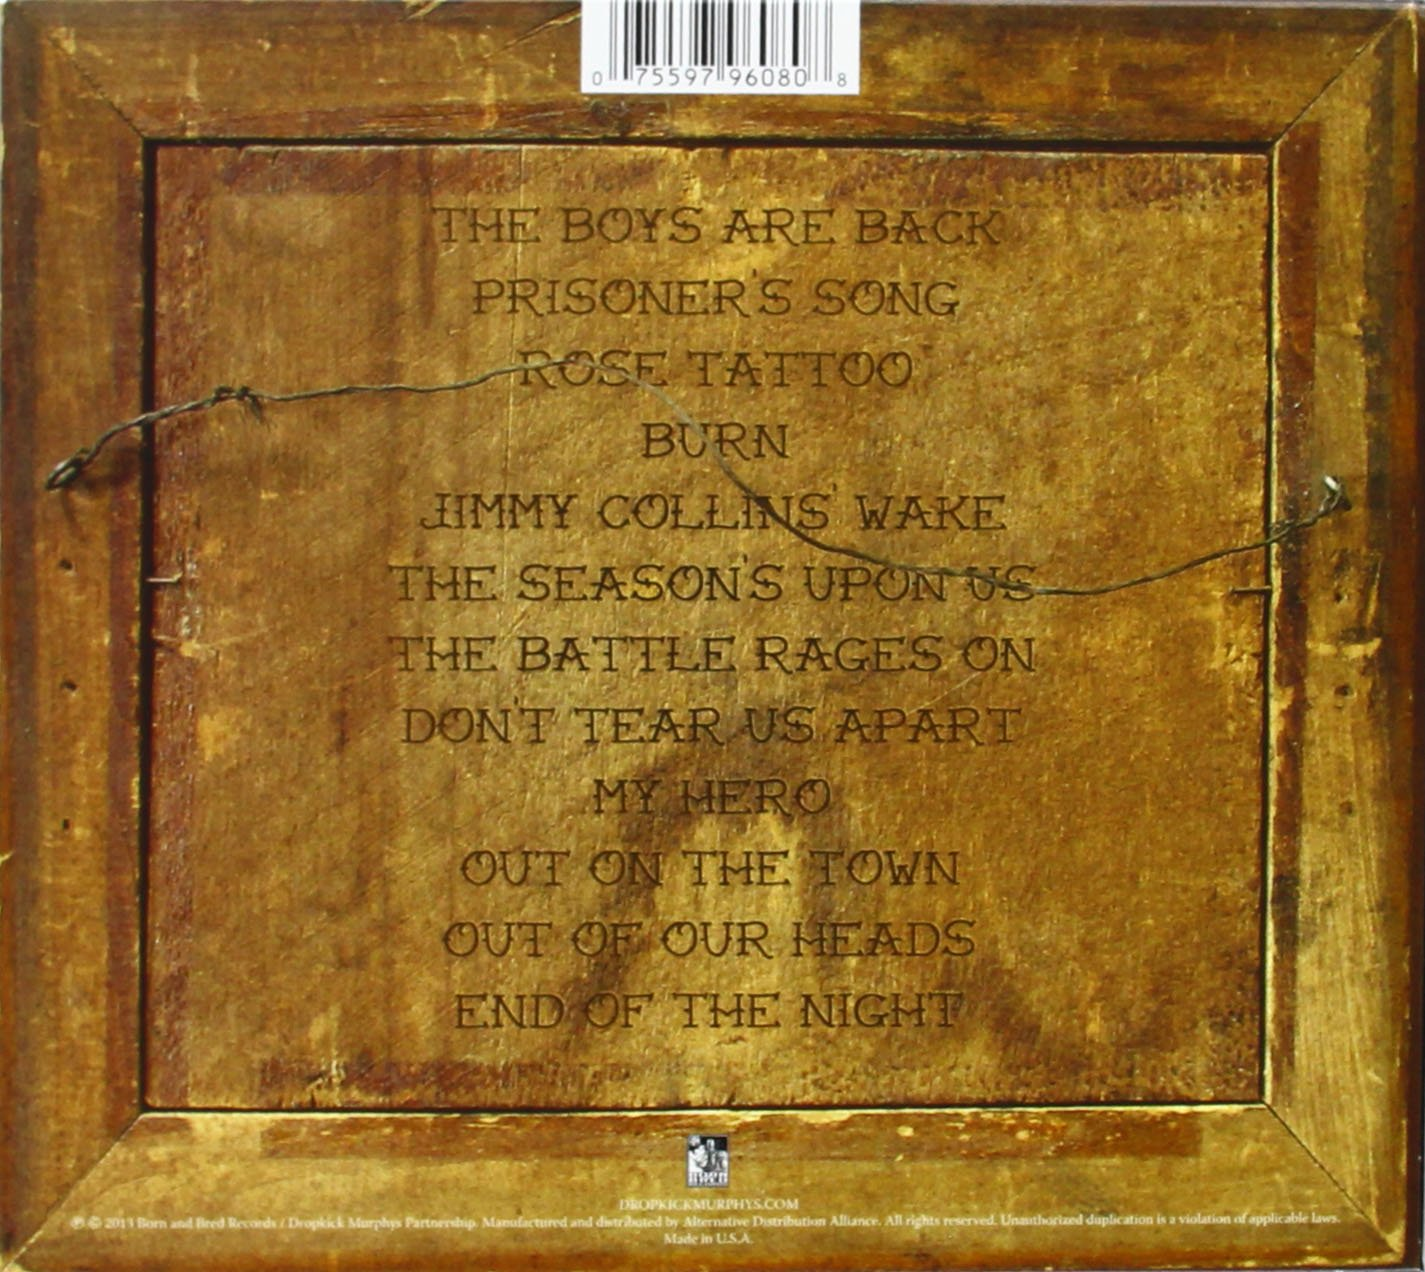 SIGNED and SEALED in BLOOD (Deluxe Edition) by Dropkick Murphys (Image #2)